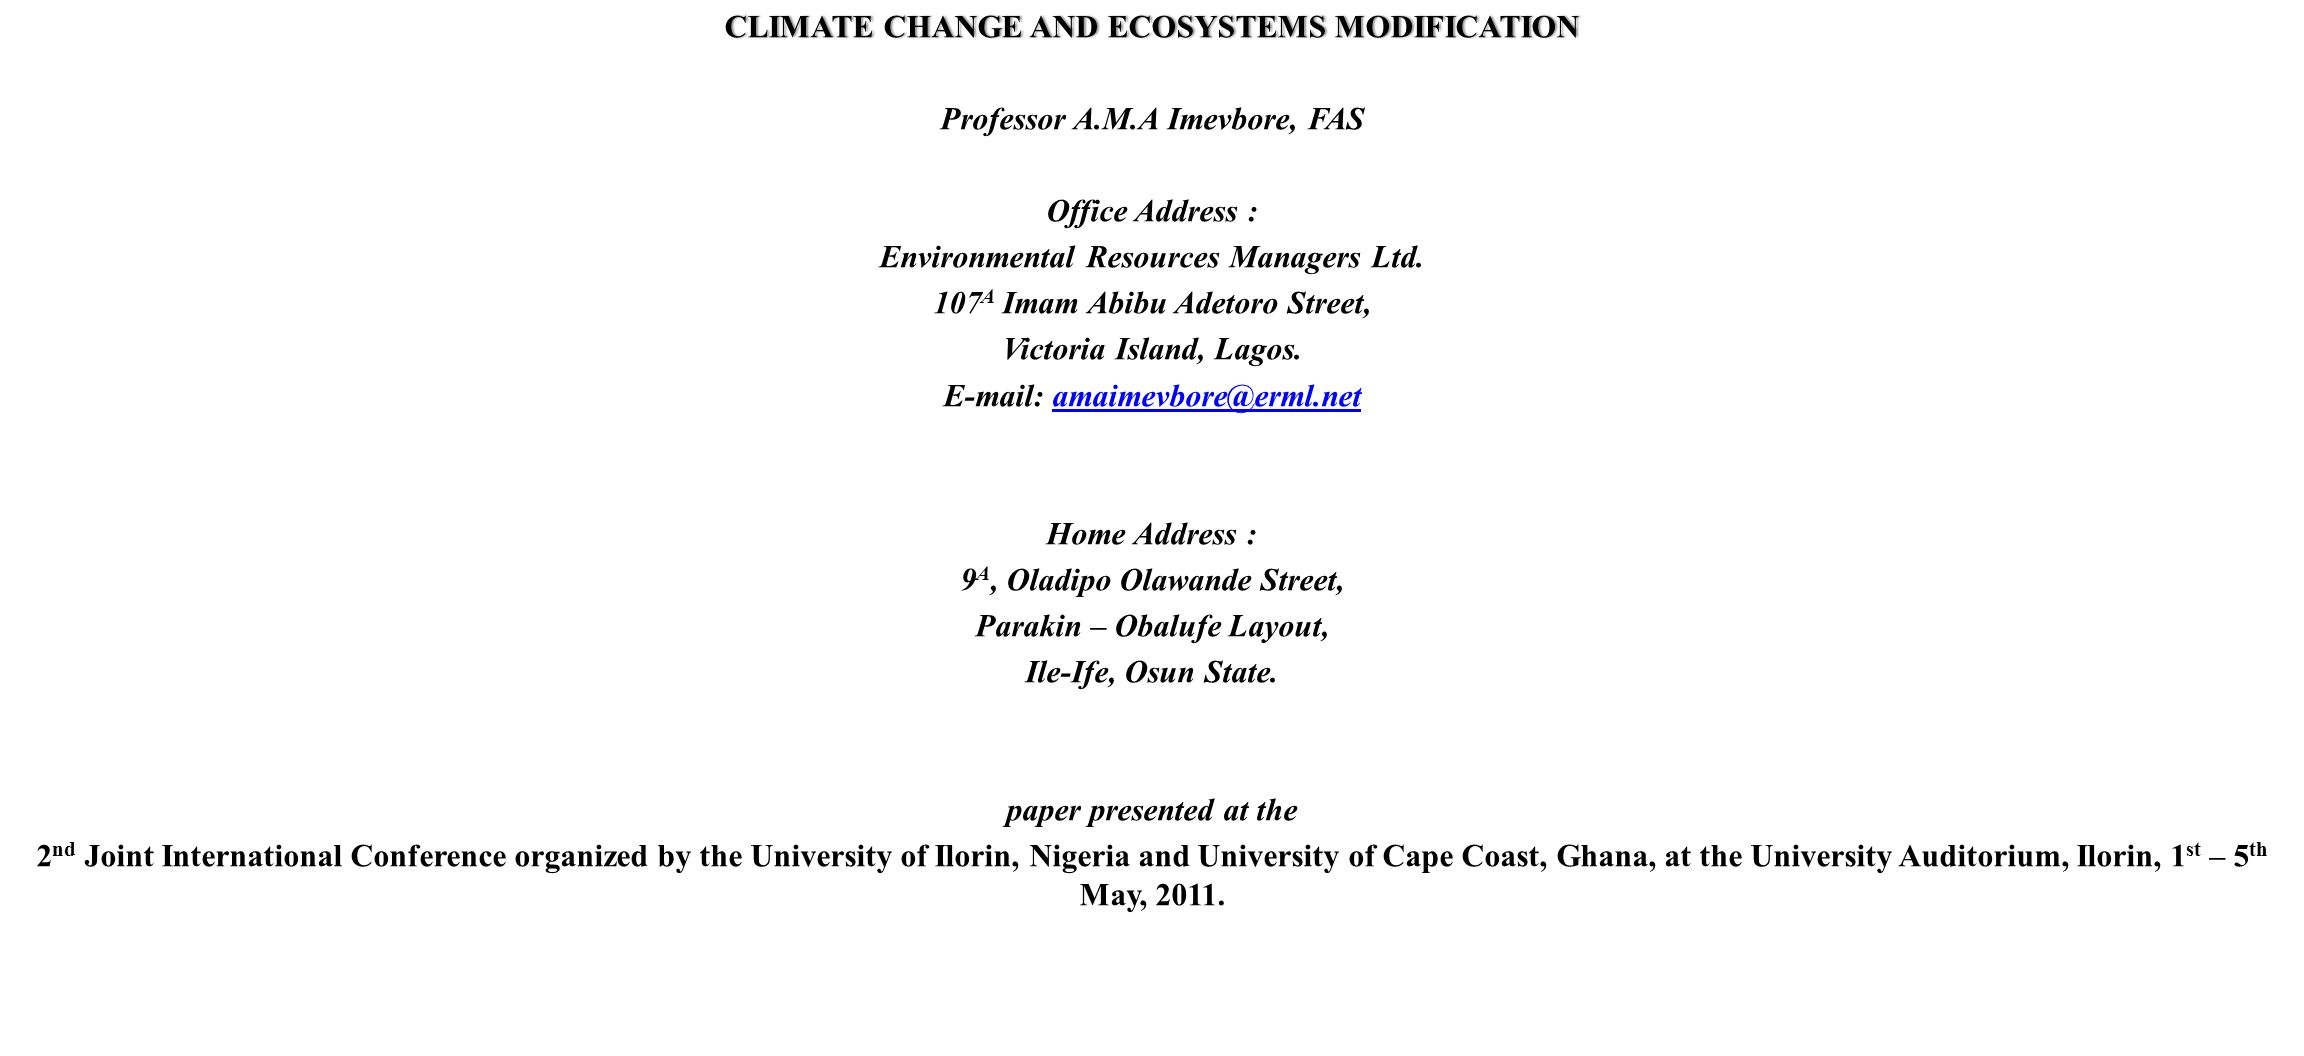 CLIMATE CHANGE AND ECOSYSTEMS MODIFICATION